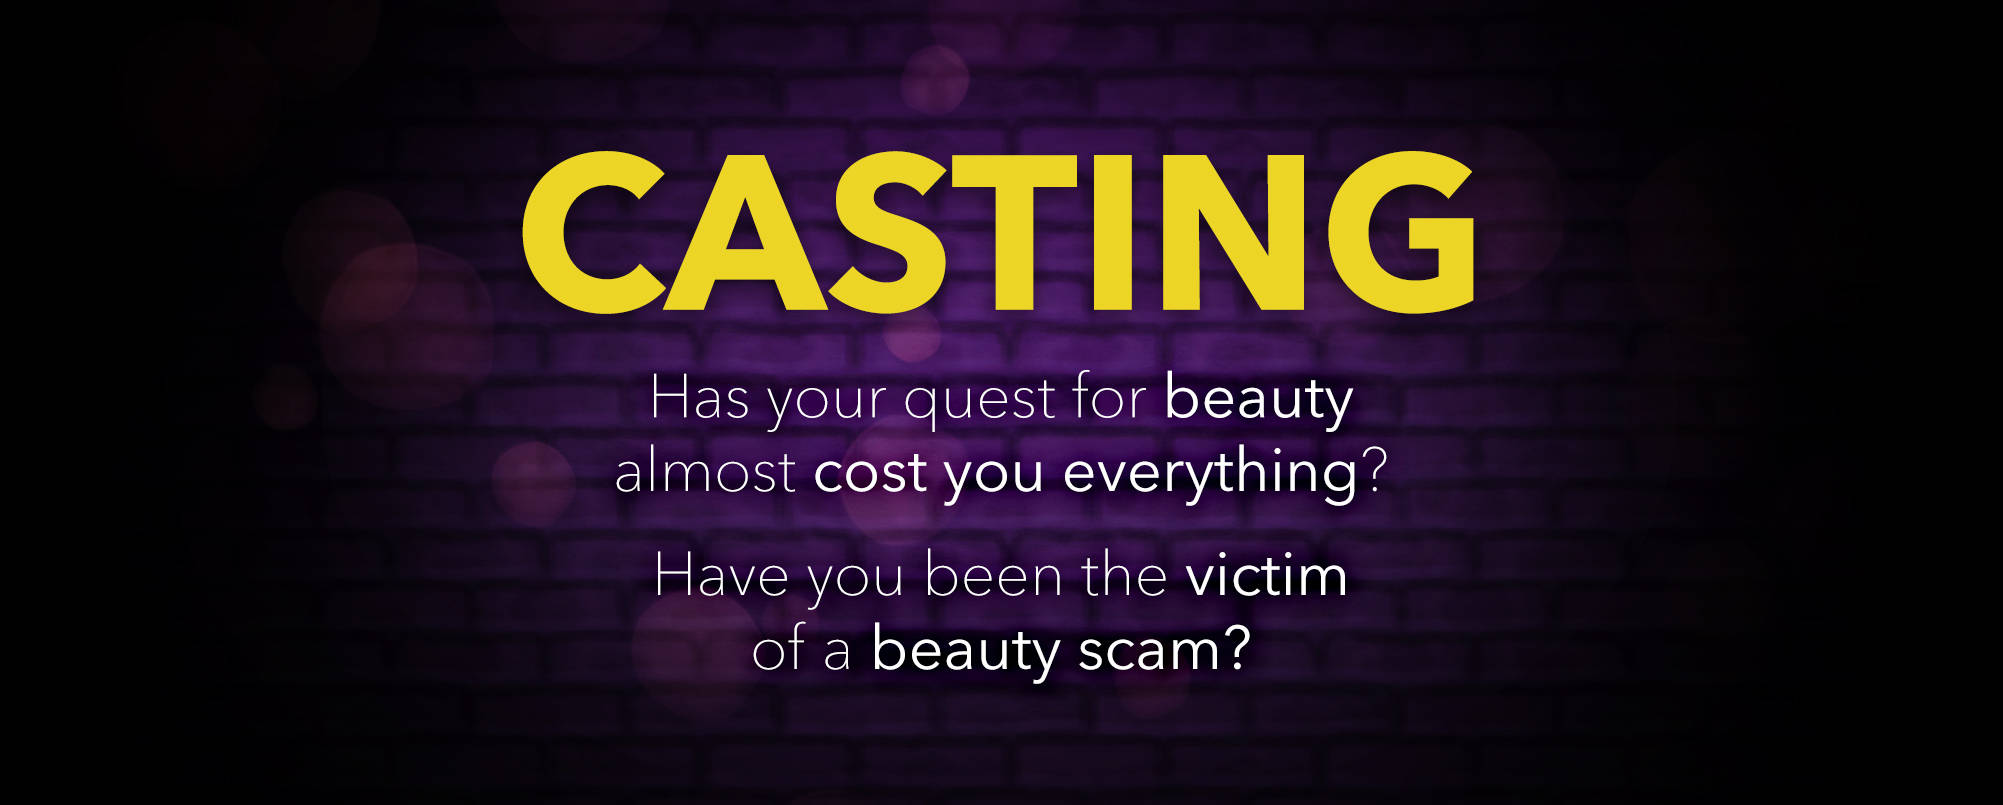 Has your quest for beauty almost cost you everything? Have you been the victim of a beauty scam?